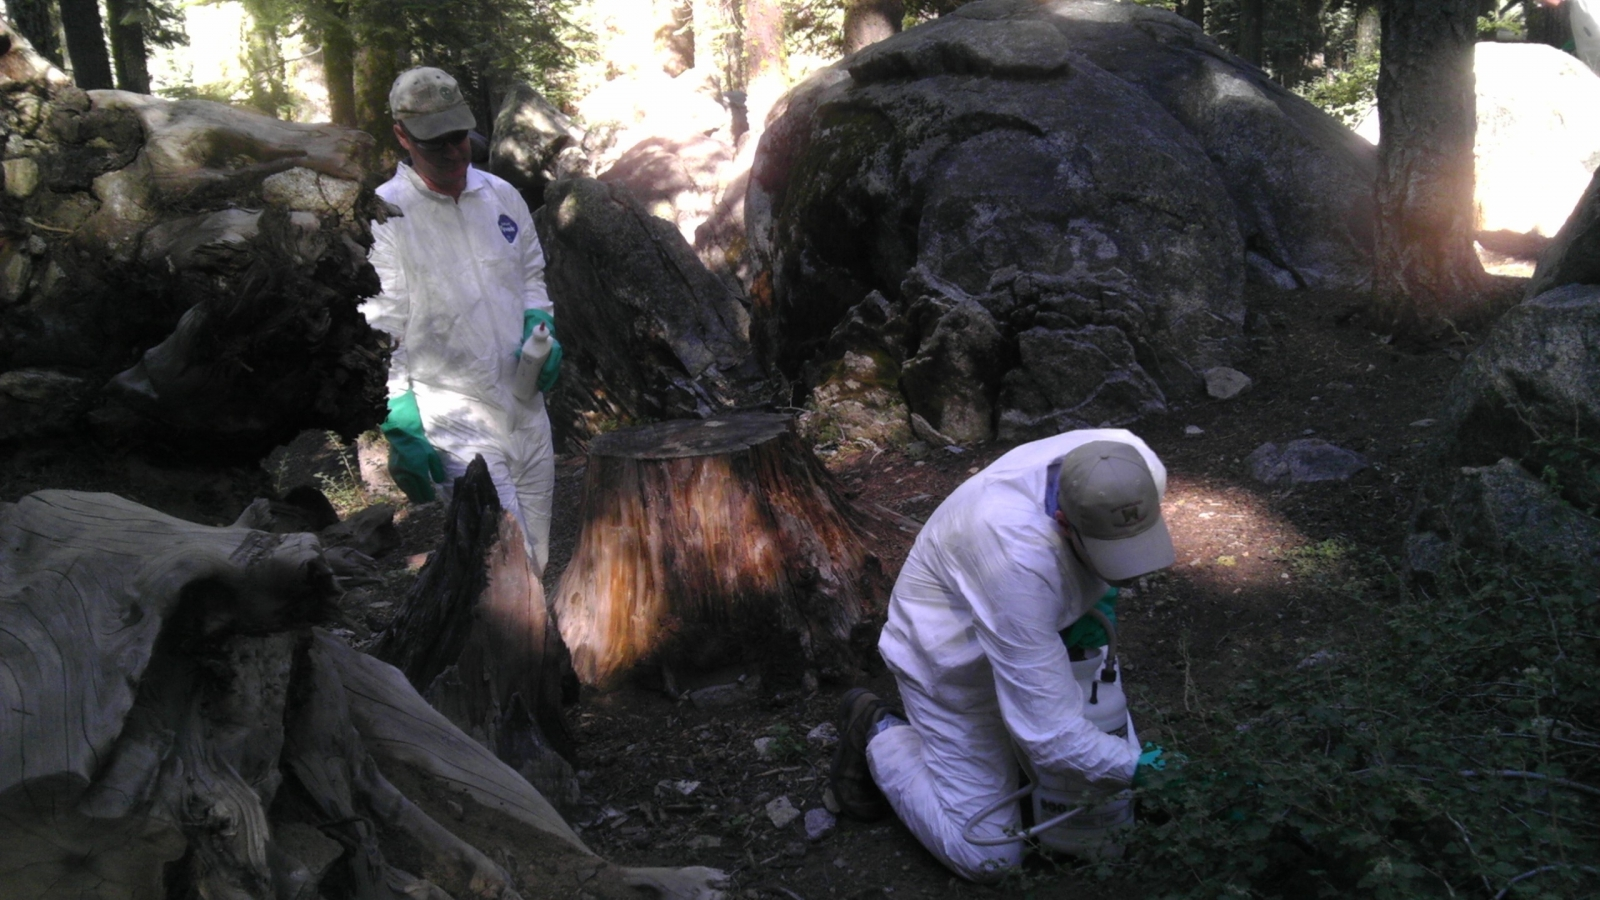 Scientists perform tests in Yosemite National Park